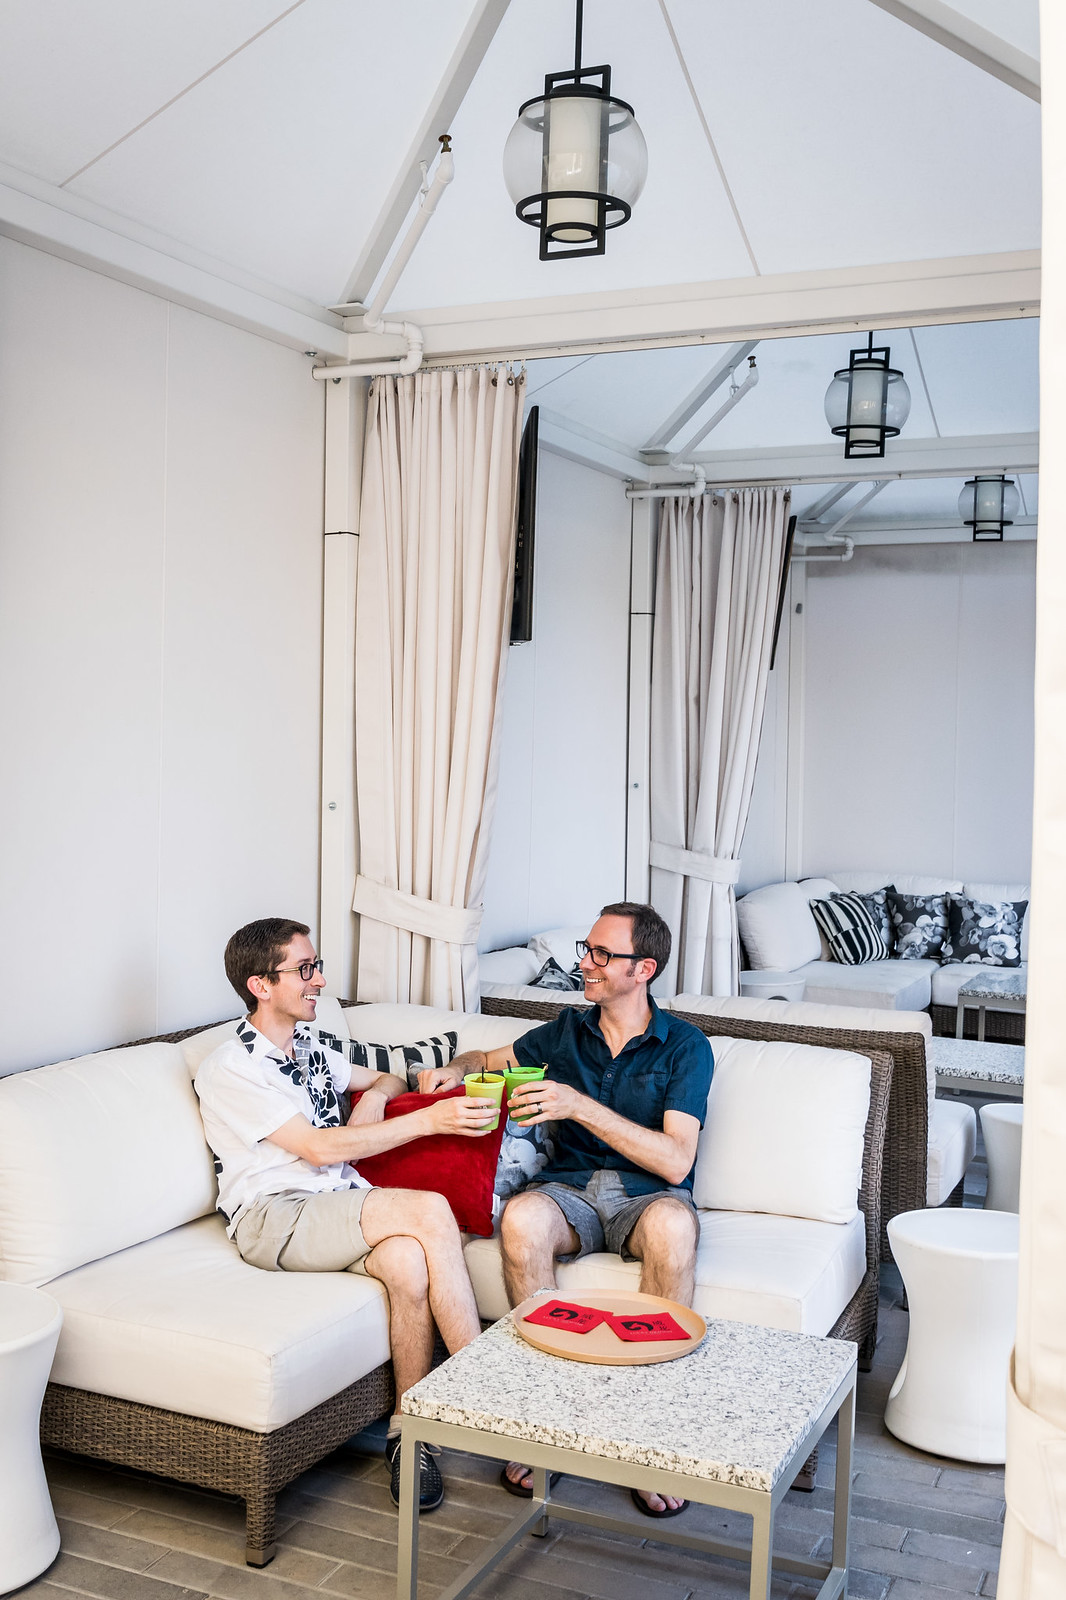 cocktails in the poolside cabana